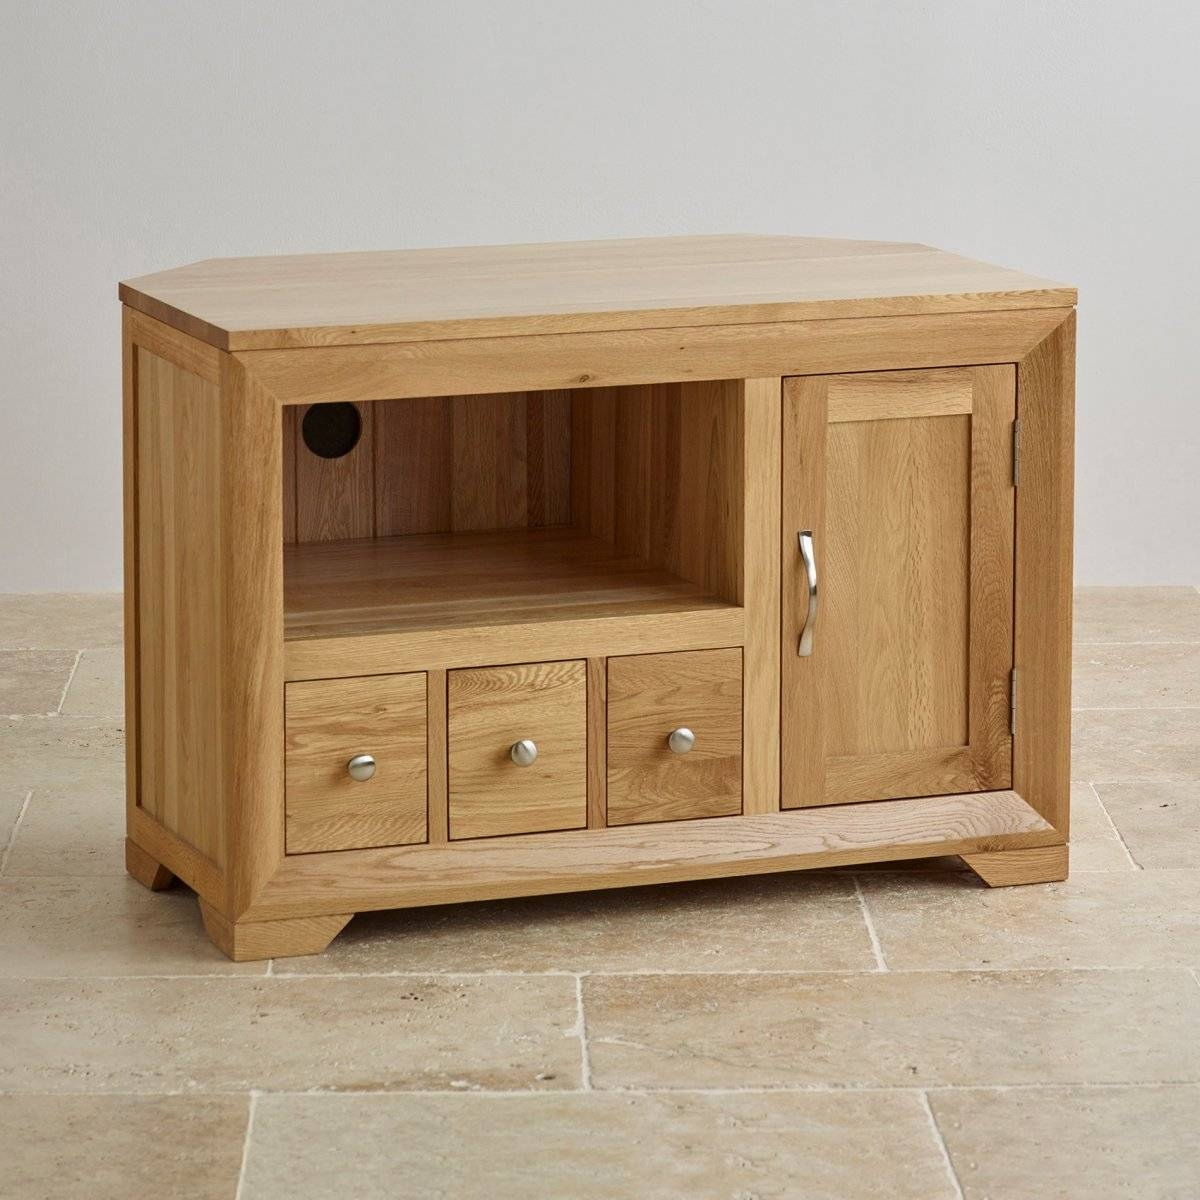 Bevel Small Corner Tv Cabinet In Solid Oak | Oak Furniture Land with regard to Oak Tv Cabinets (Image 2 of 15)